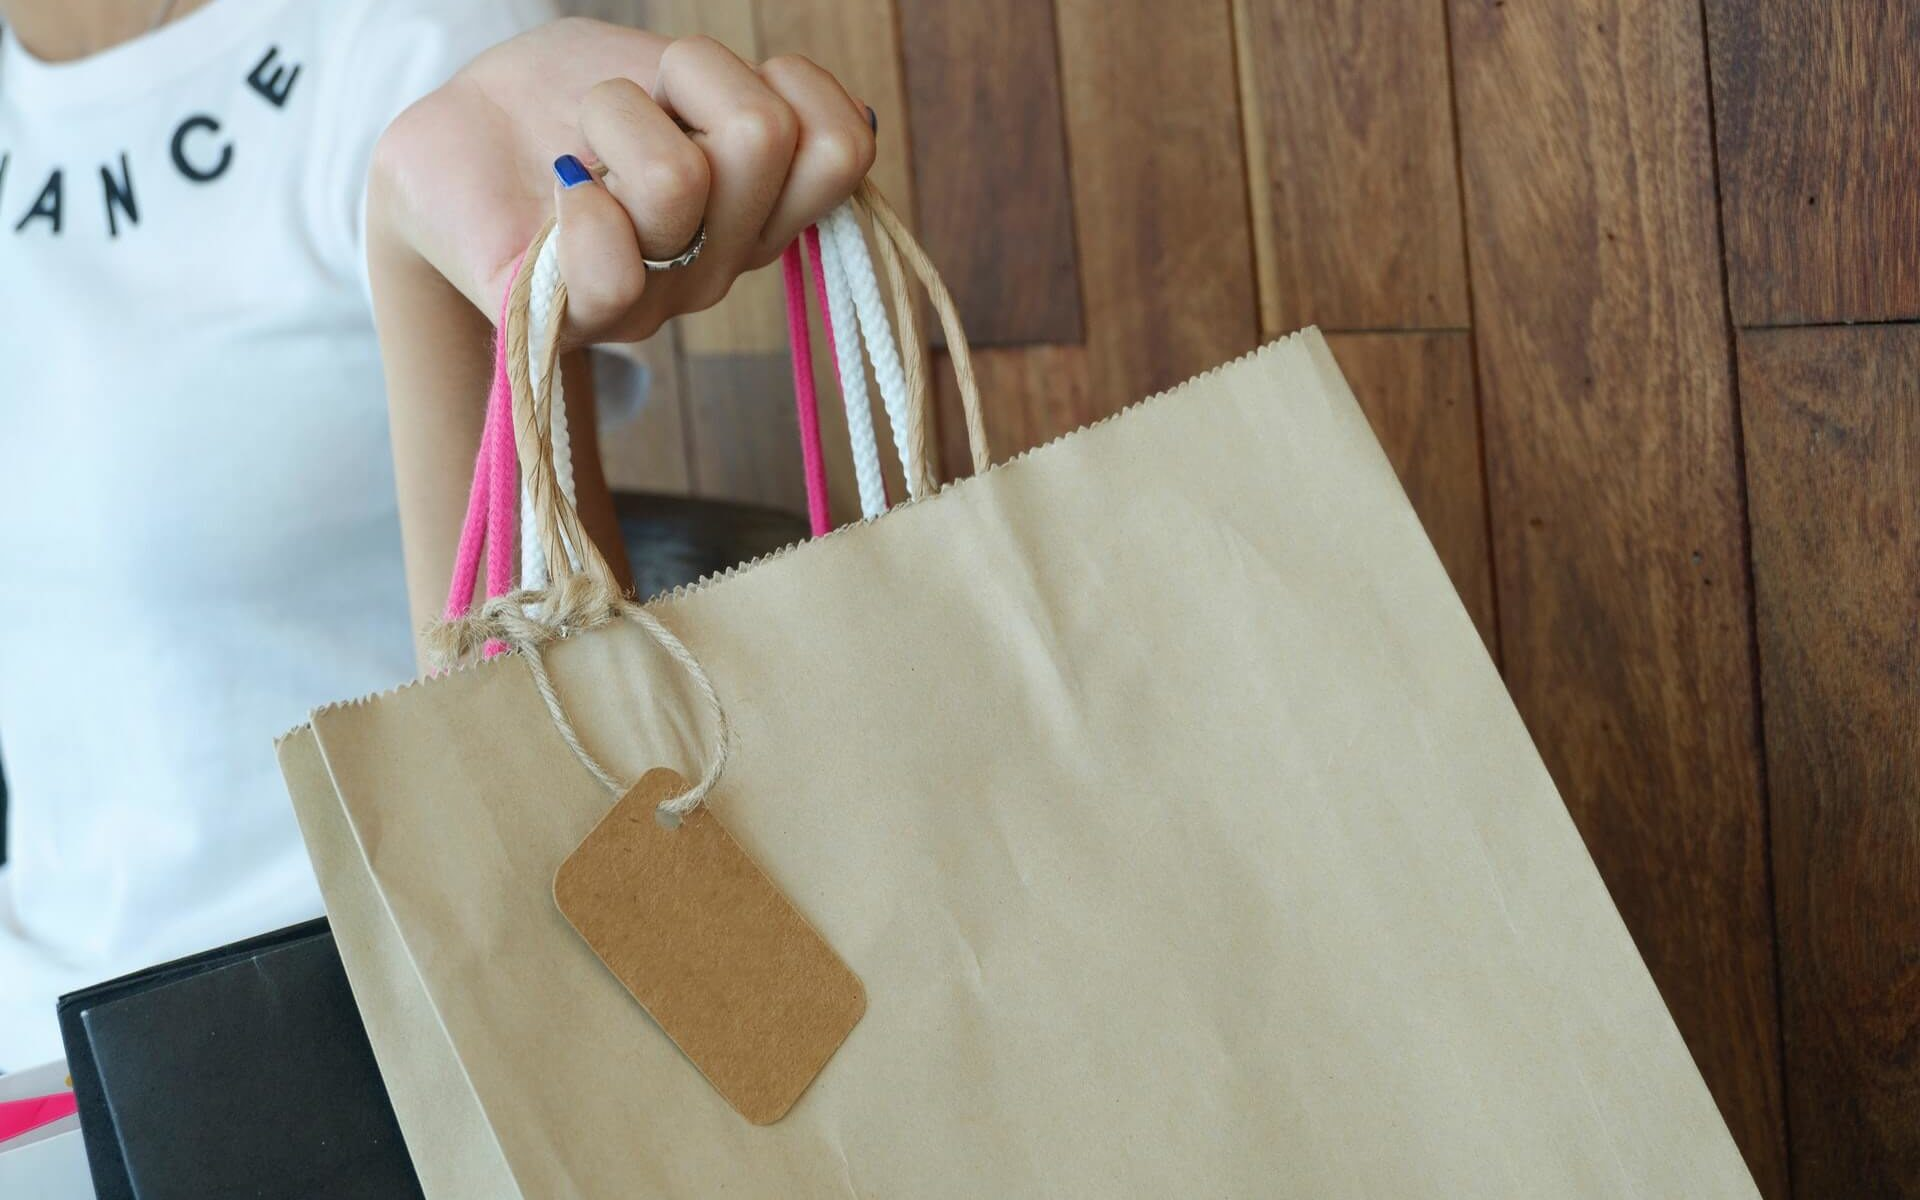 How to stop impulse buying and start shopping intentionally